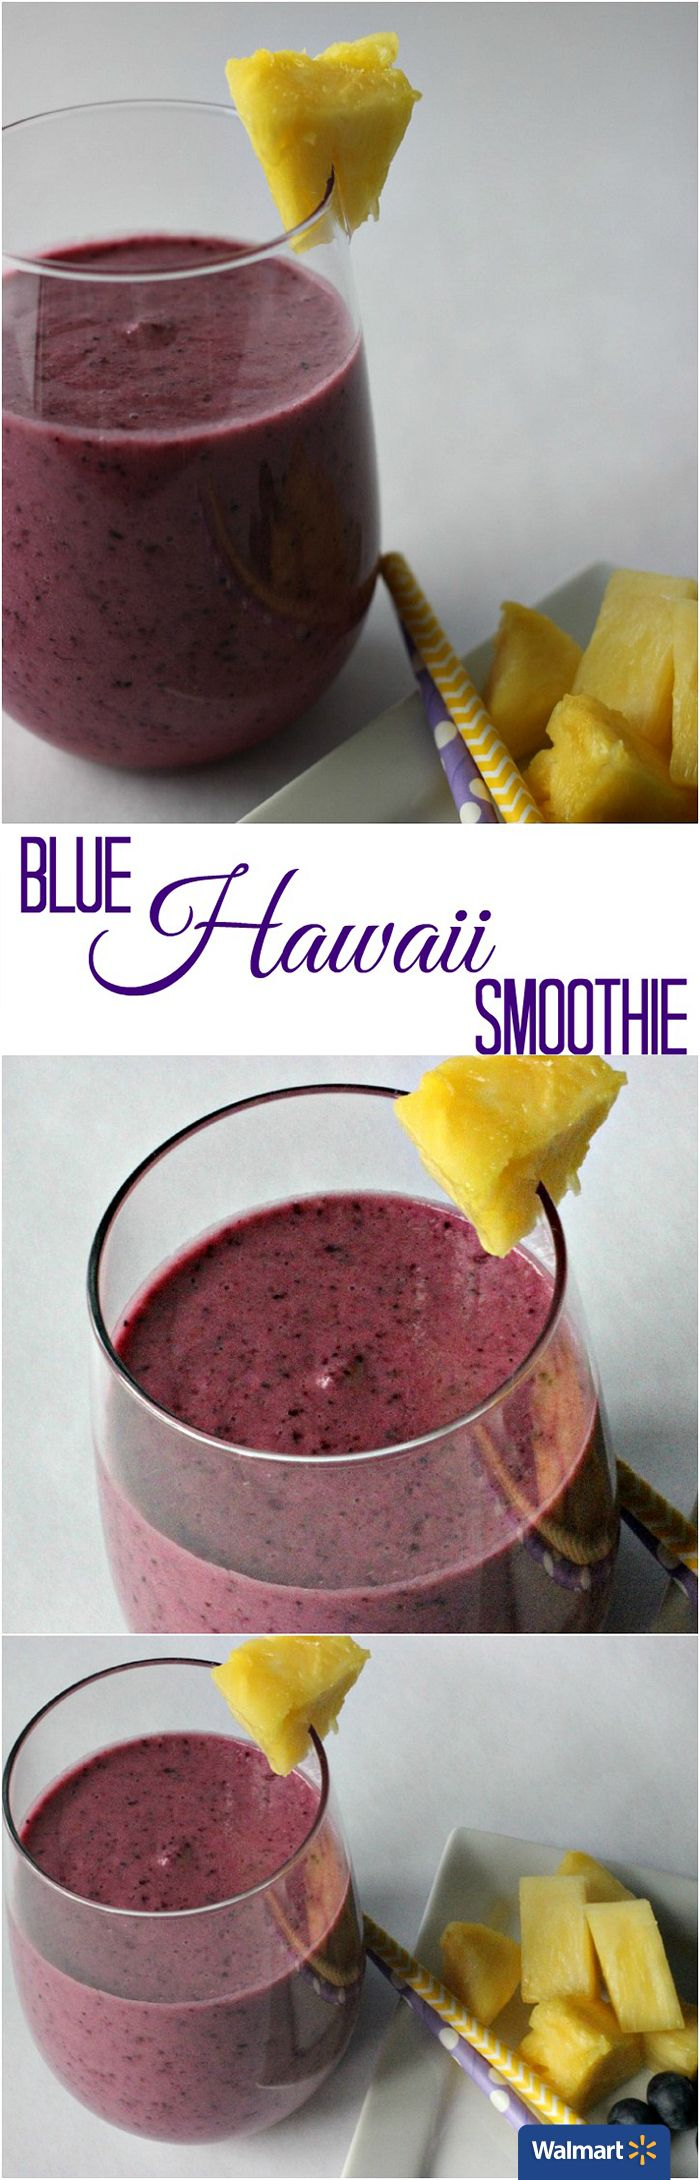 Blue Hawaii Smoothie   Walmart – Start the new year off right with this smoothie recipe that's packed full of fruits and protein! The ingredients in this Blue Hawaii Smoothie are simple and a bit surprising. Pineapple and blueberries are the stars here, a small piece of ginger is added for flavor. The Light & Fit Protein Drink and Dannon Greek Yogurt give the smoothie a burst of nutrients as well as creaminess.